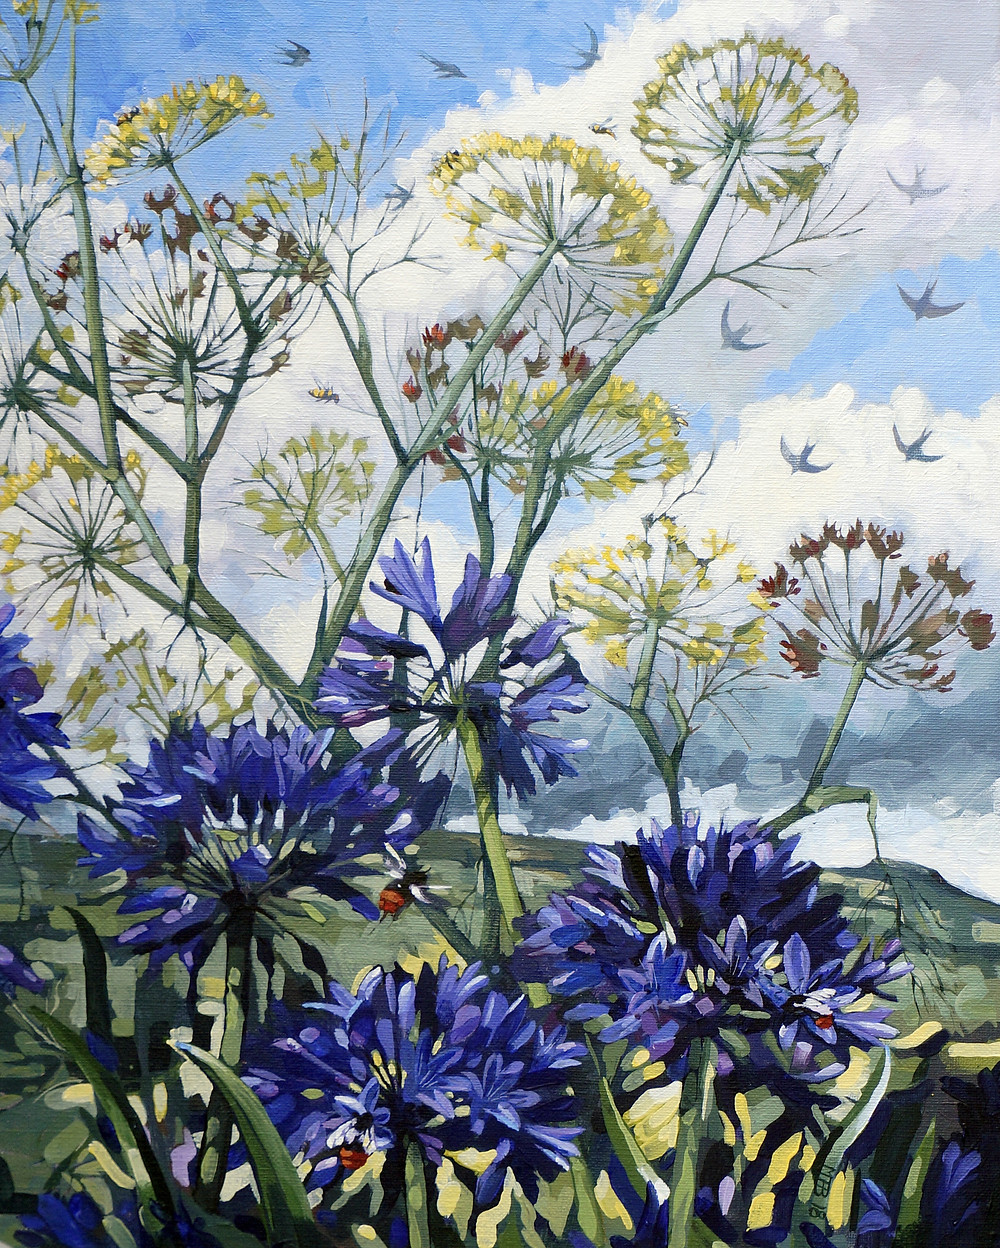 Agapanthus, fennel, birds and bees. Acrylic on linen.